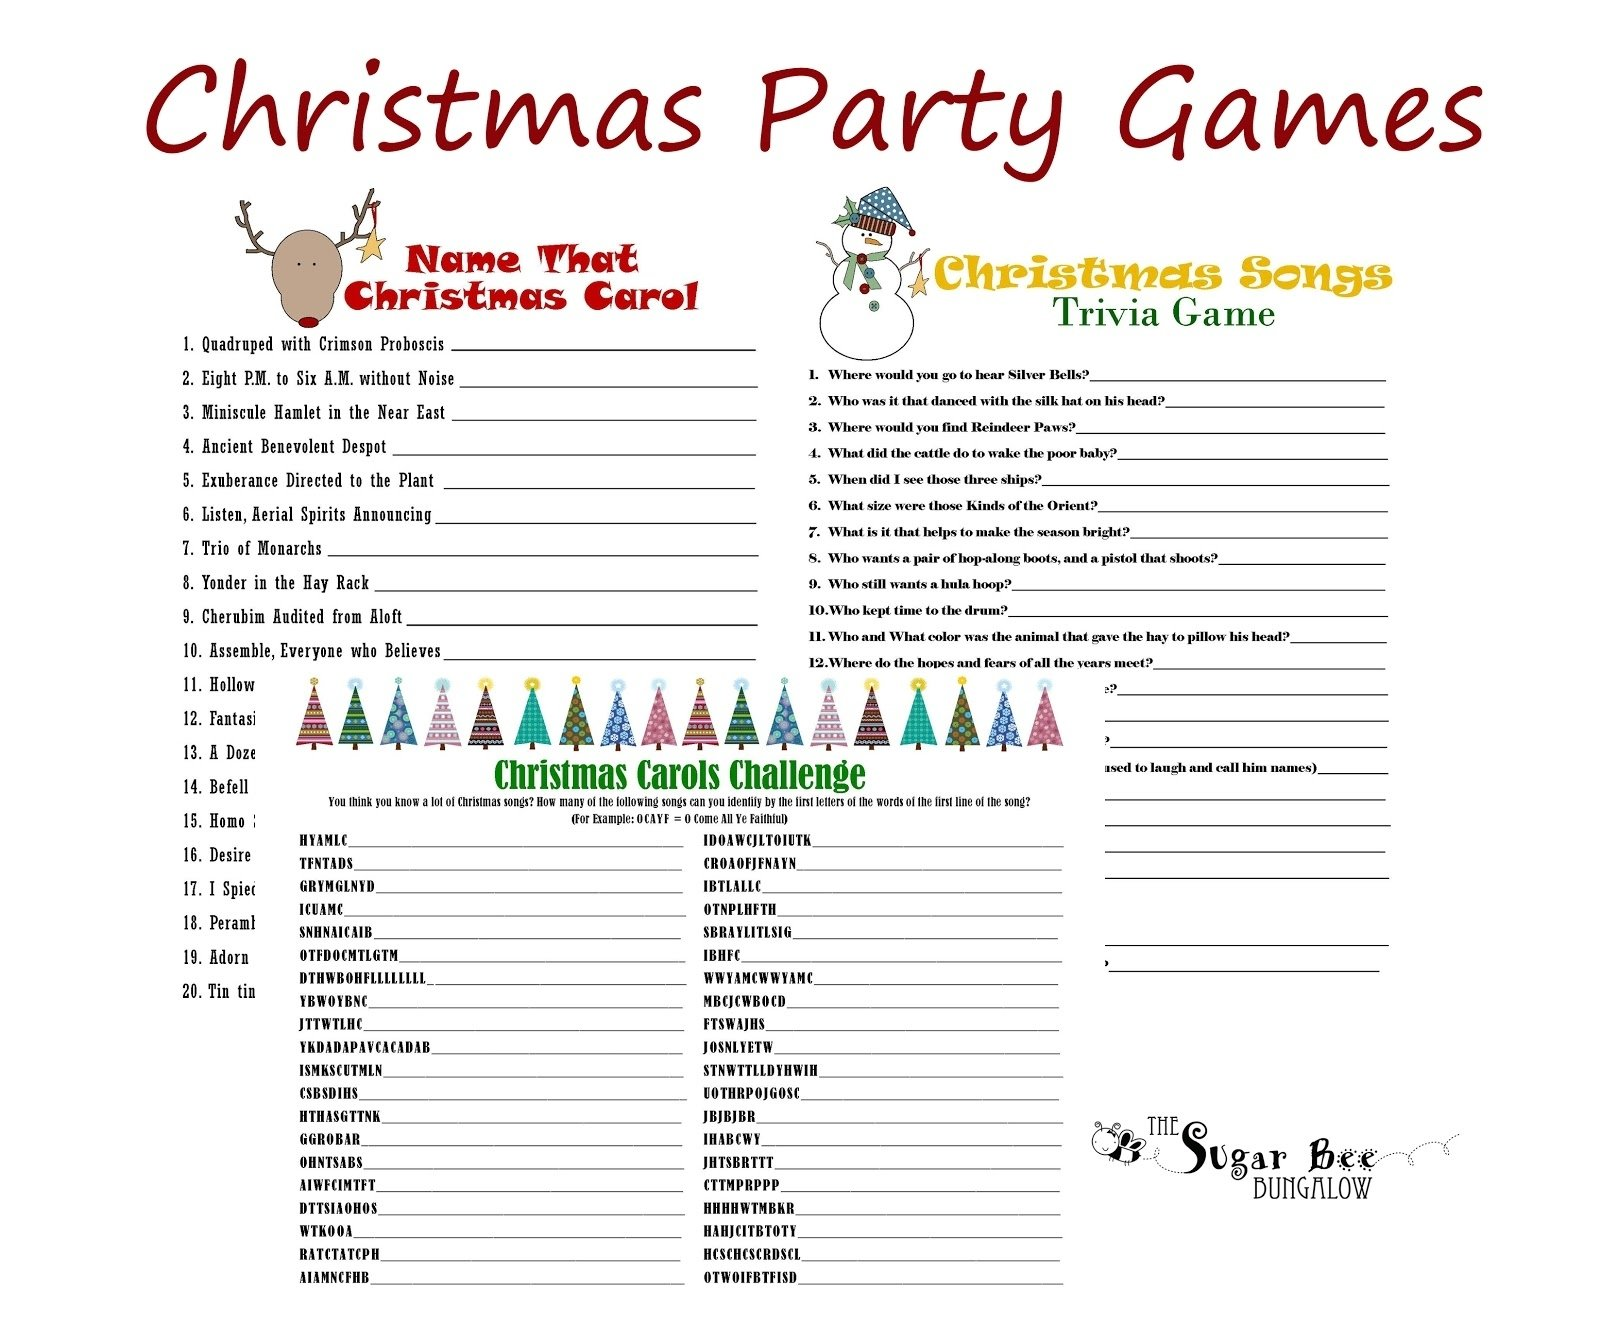 10 Most Recommended Christmas Game Ideas For Adults christmas party games ideas for adults wedding 1